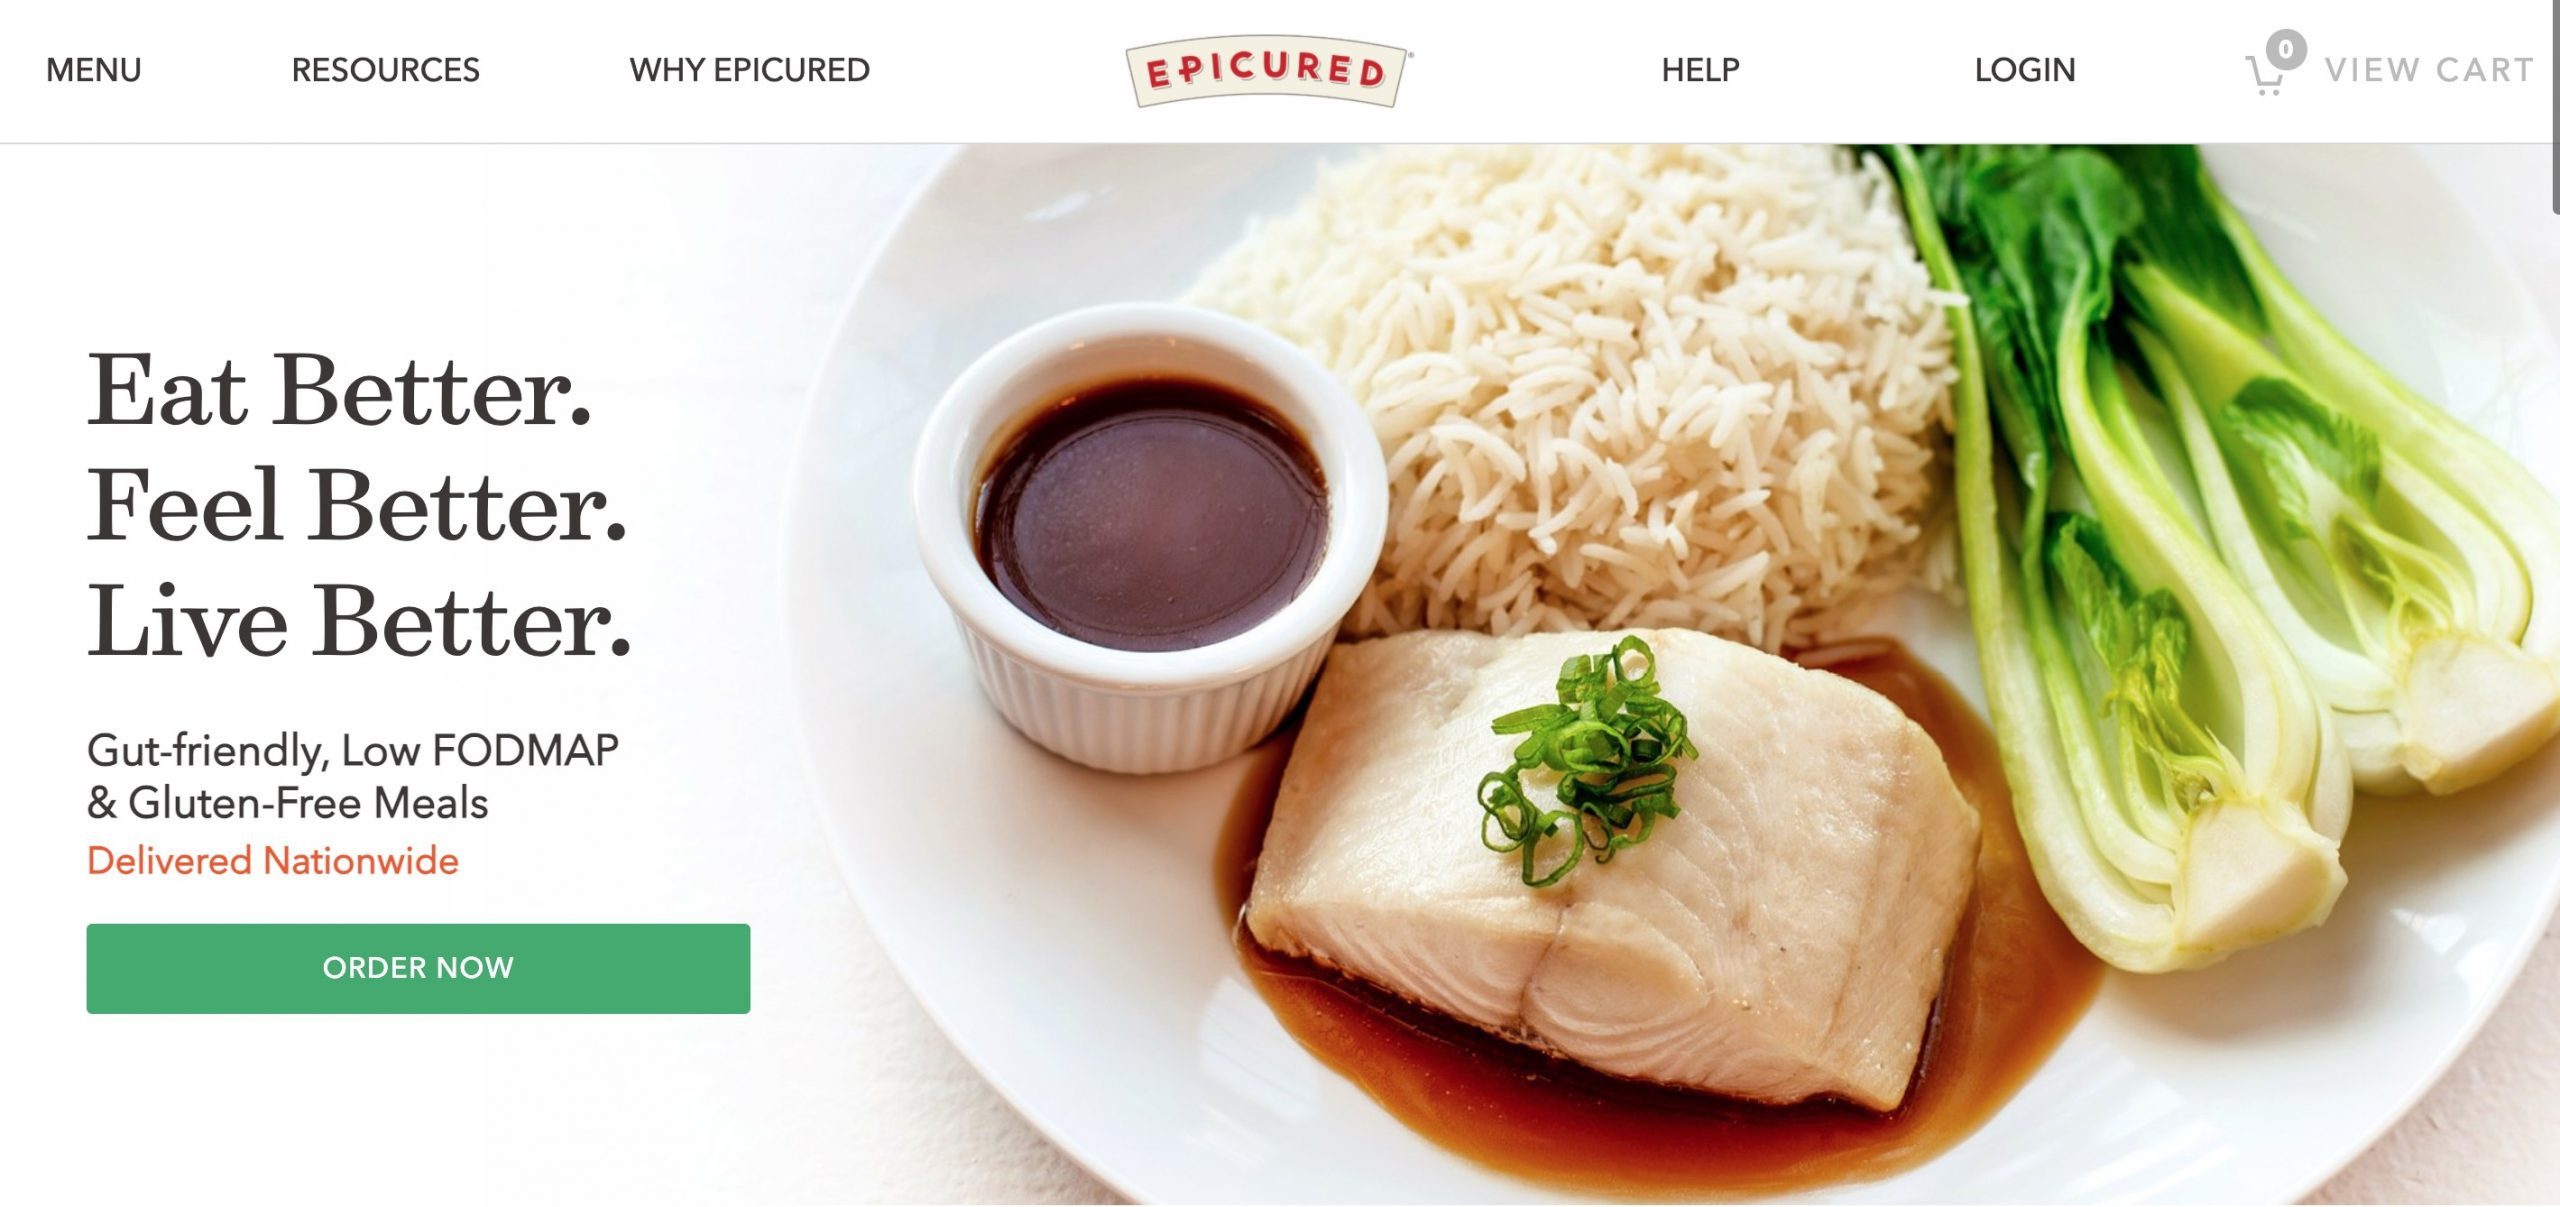 Epicured main page